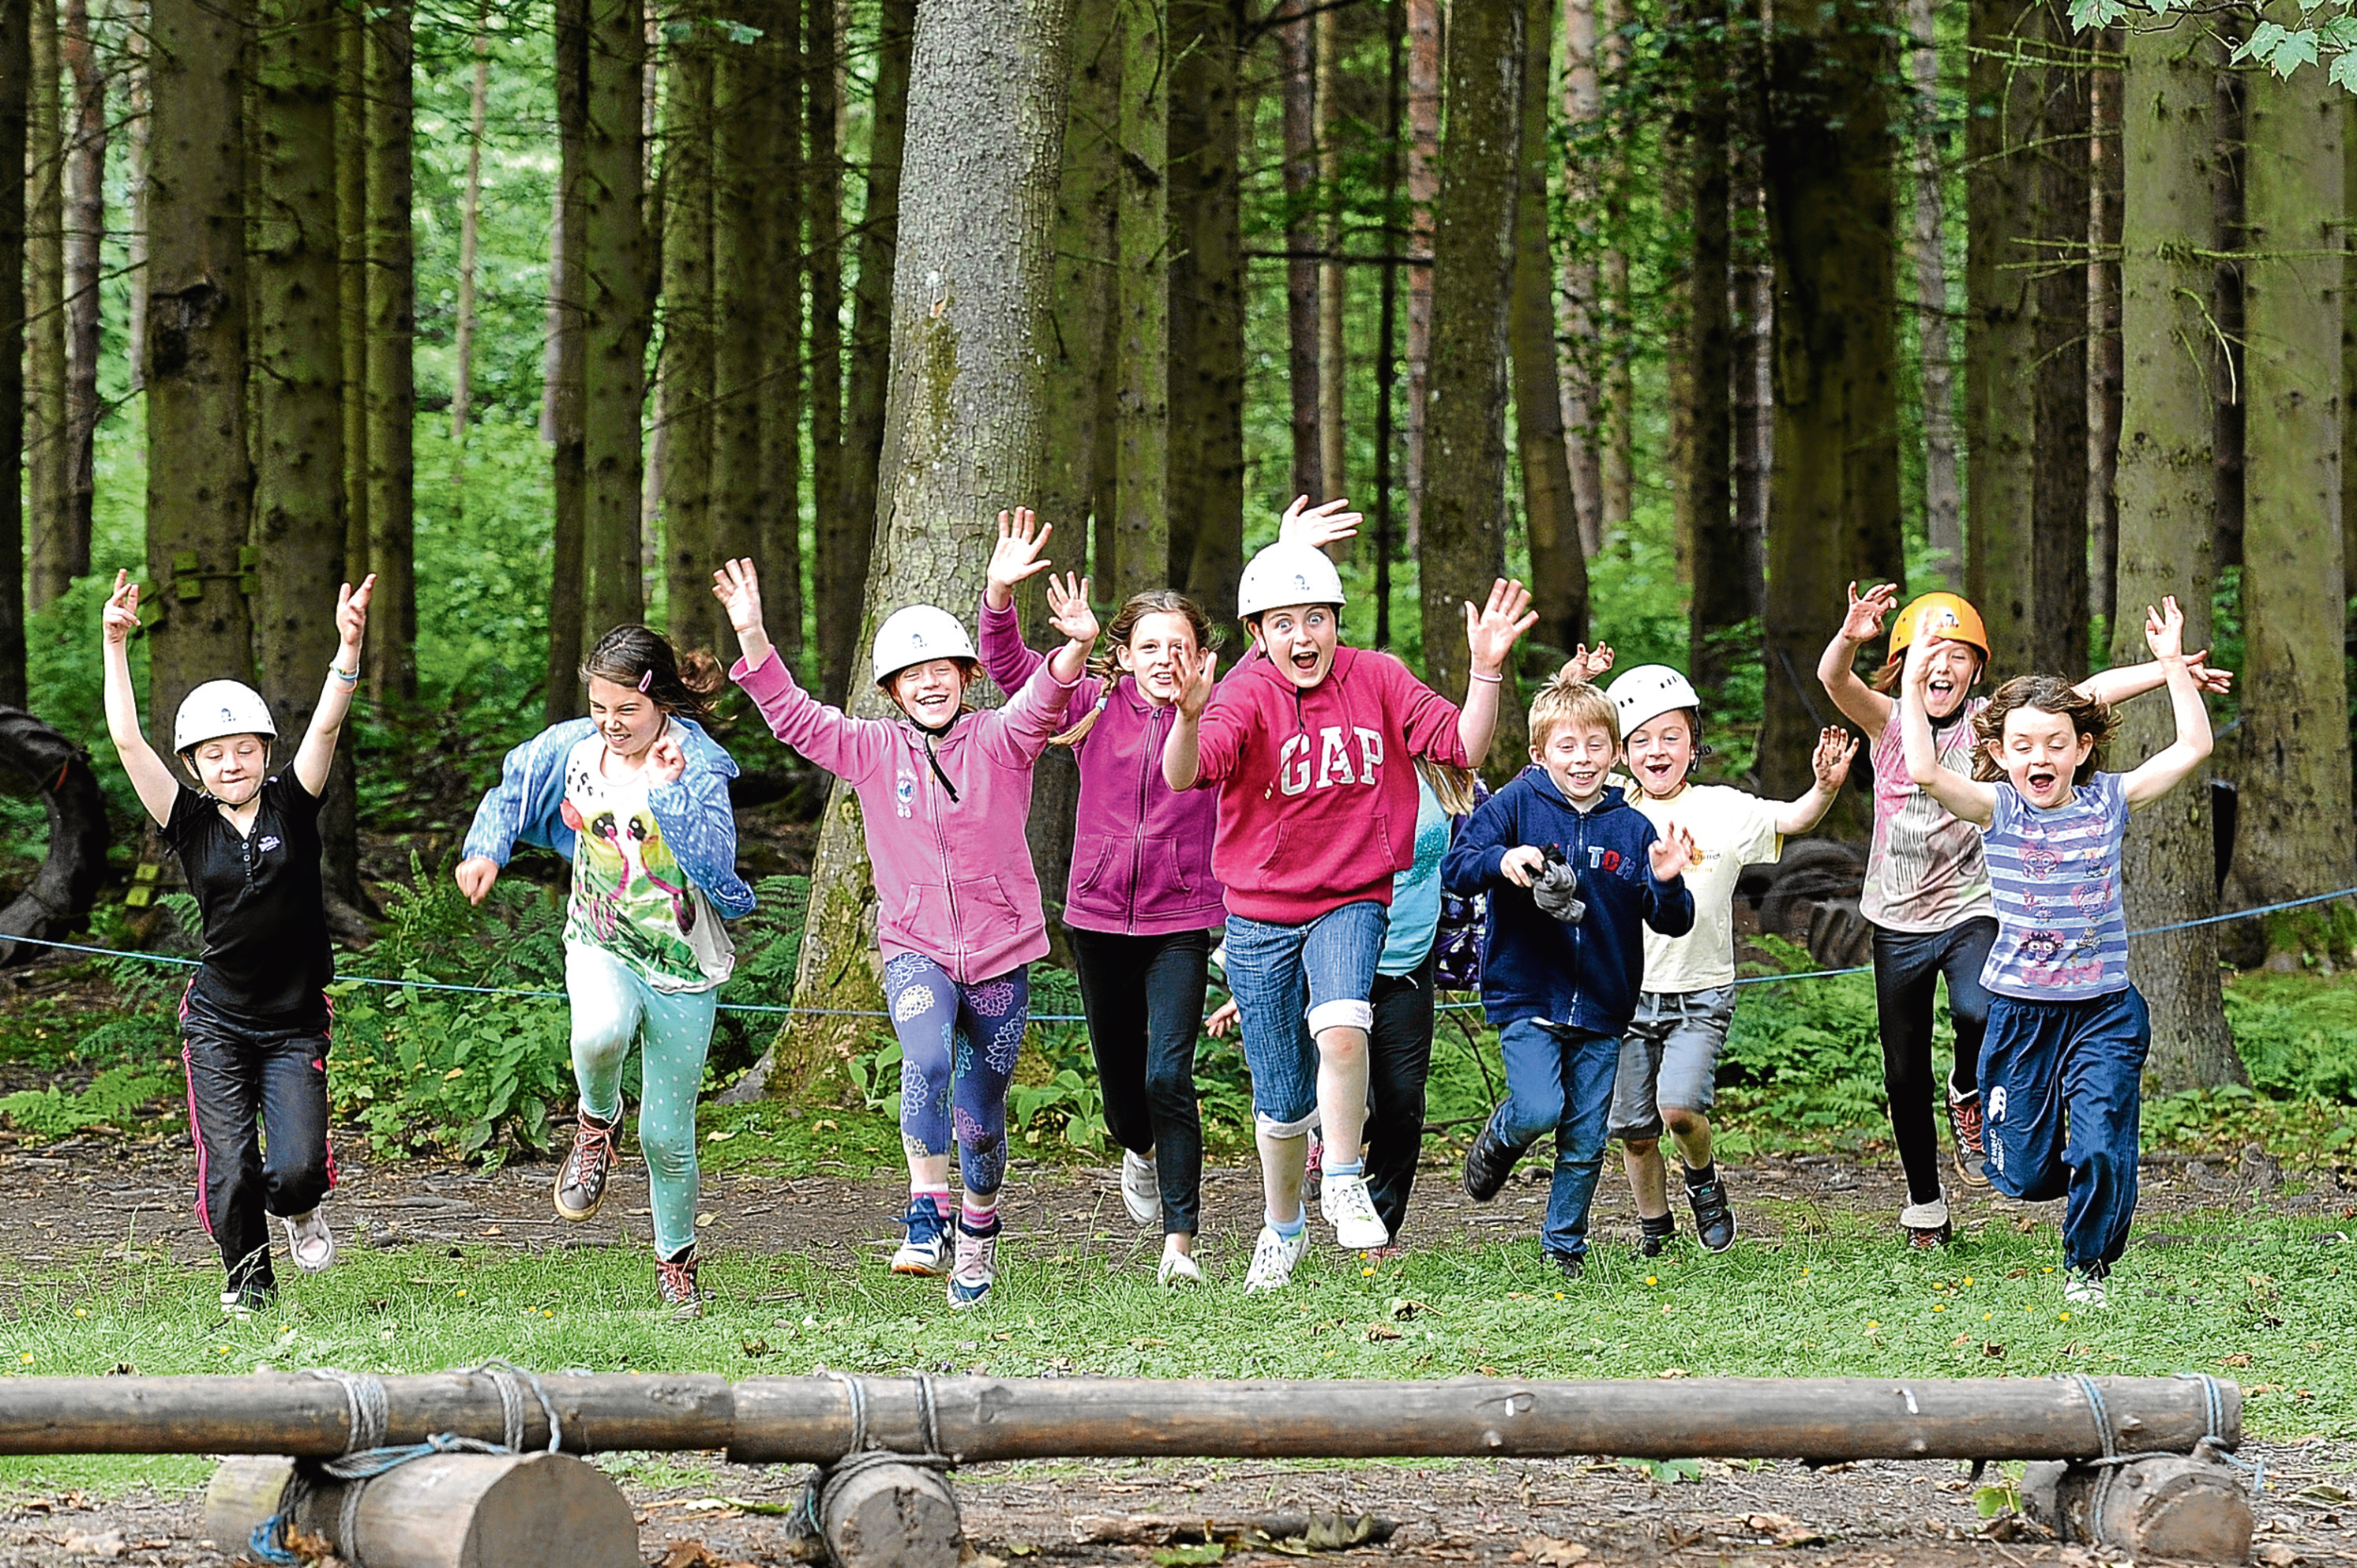 Kids enjoying the outdoor activities at Belmont Camp in Meigle